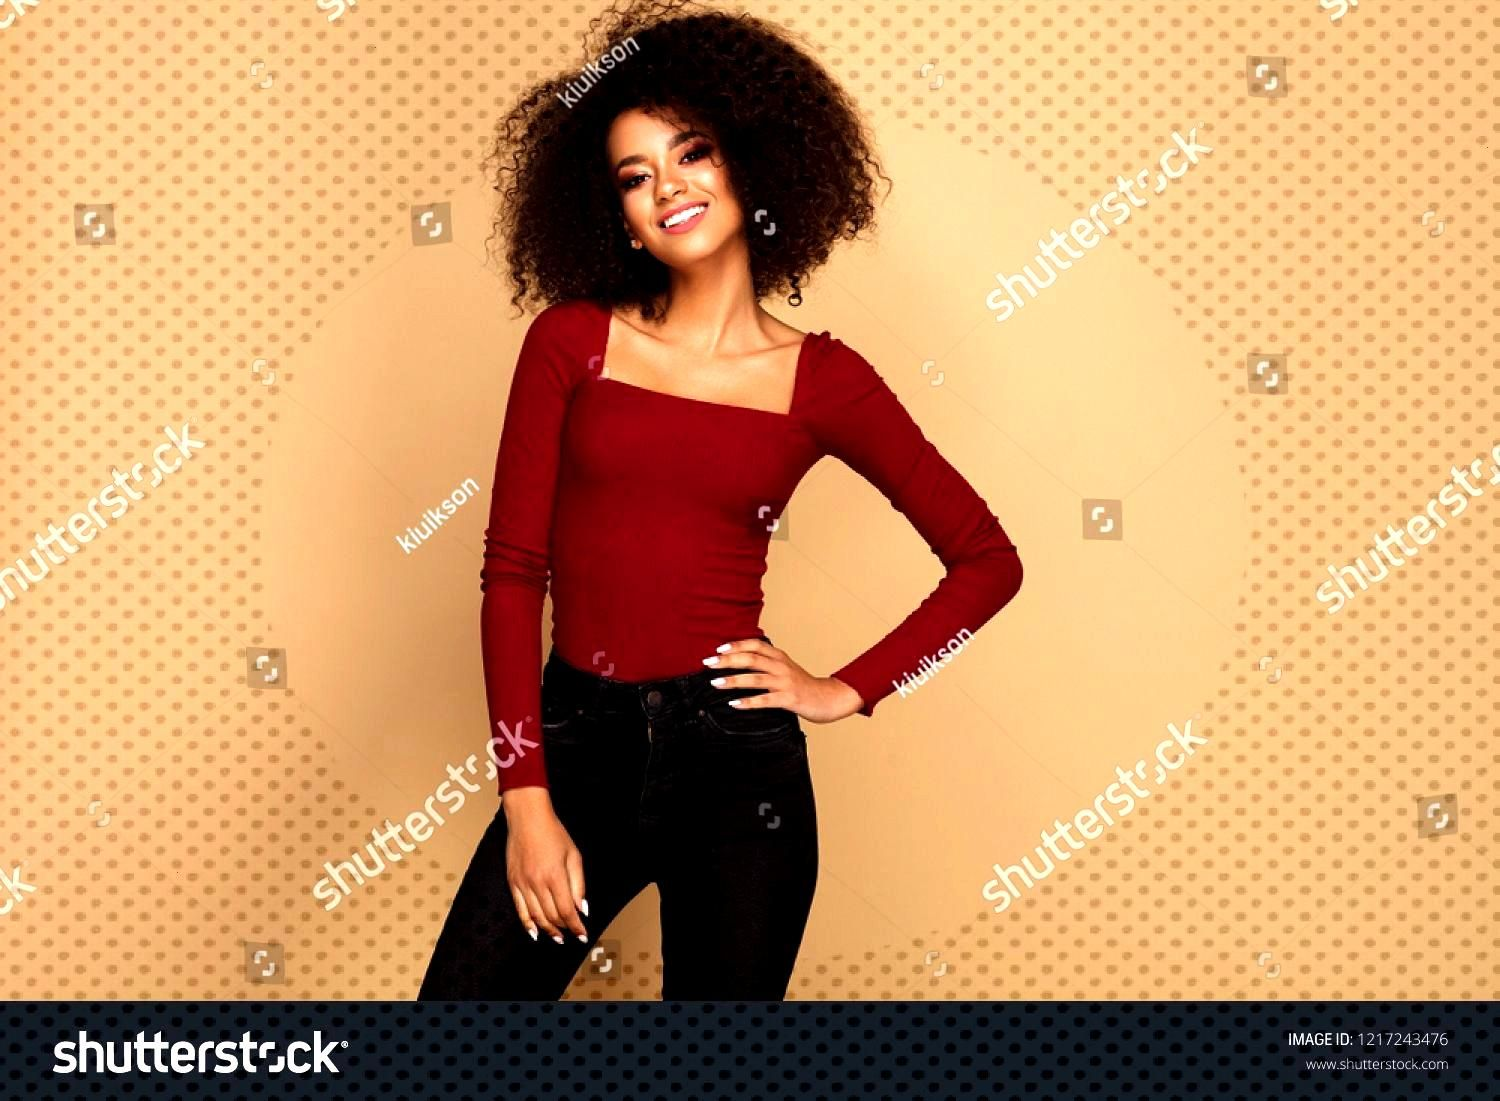 Beautiful african american woman with afro isolated on studio background with copy space ,